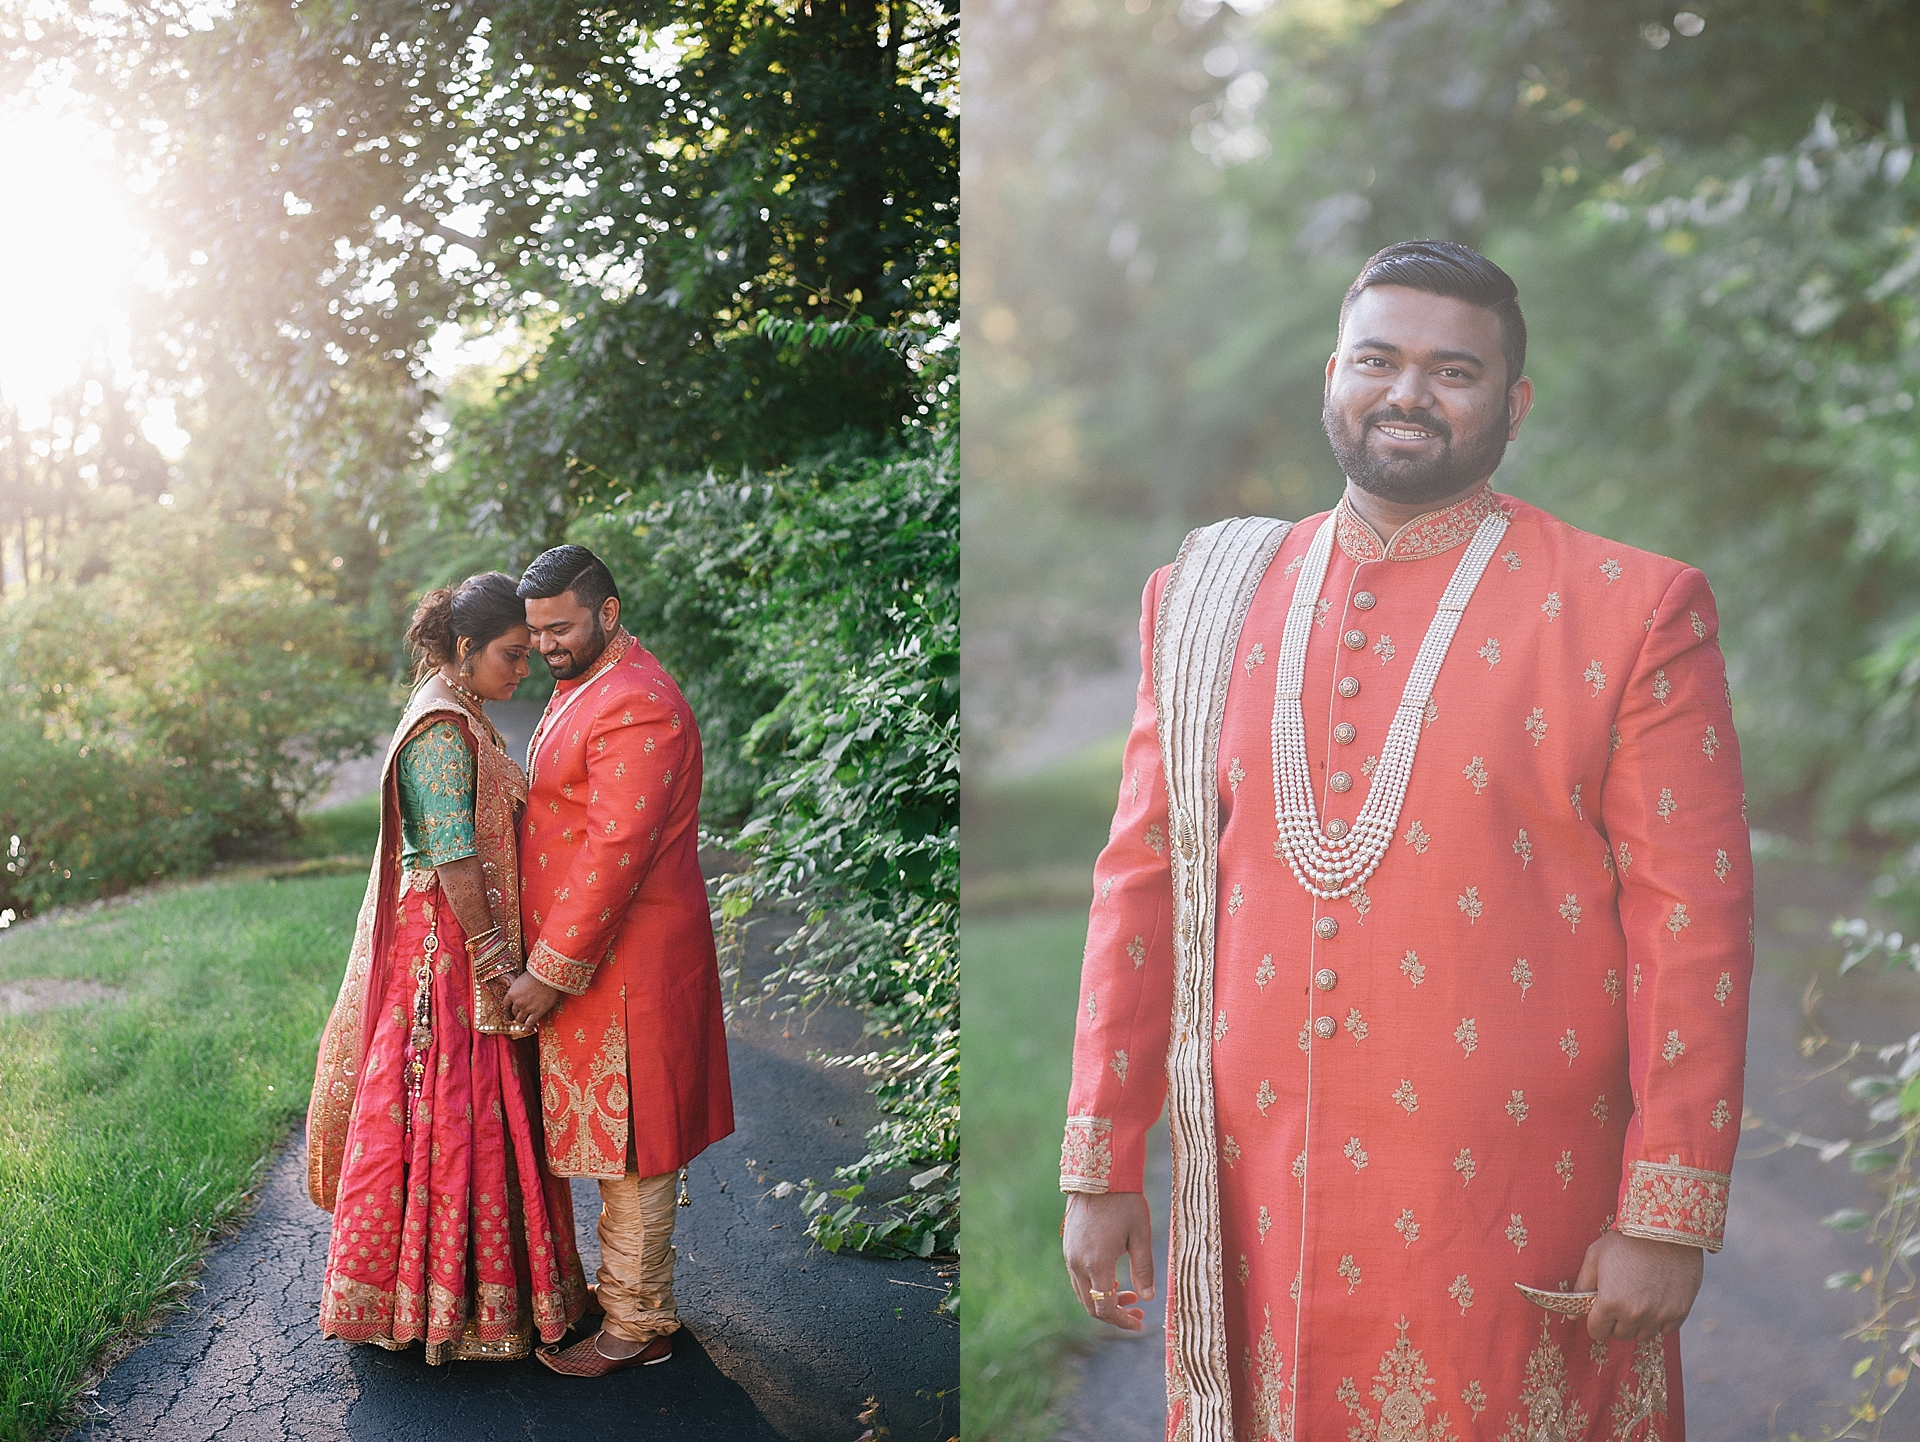 Prexa_Harry_Columbus_Crown_Plaza_Indian_Wedding0007.jpg